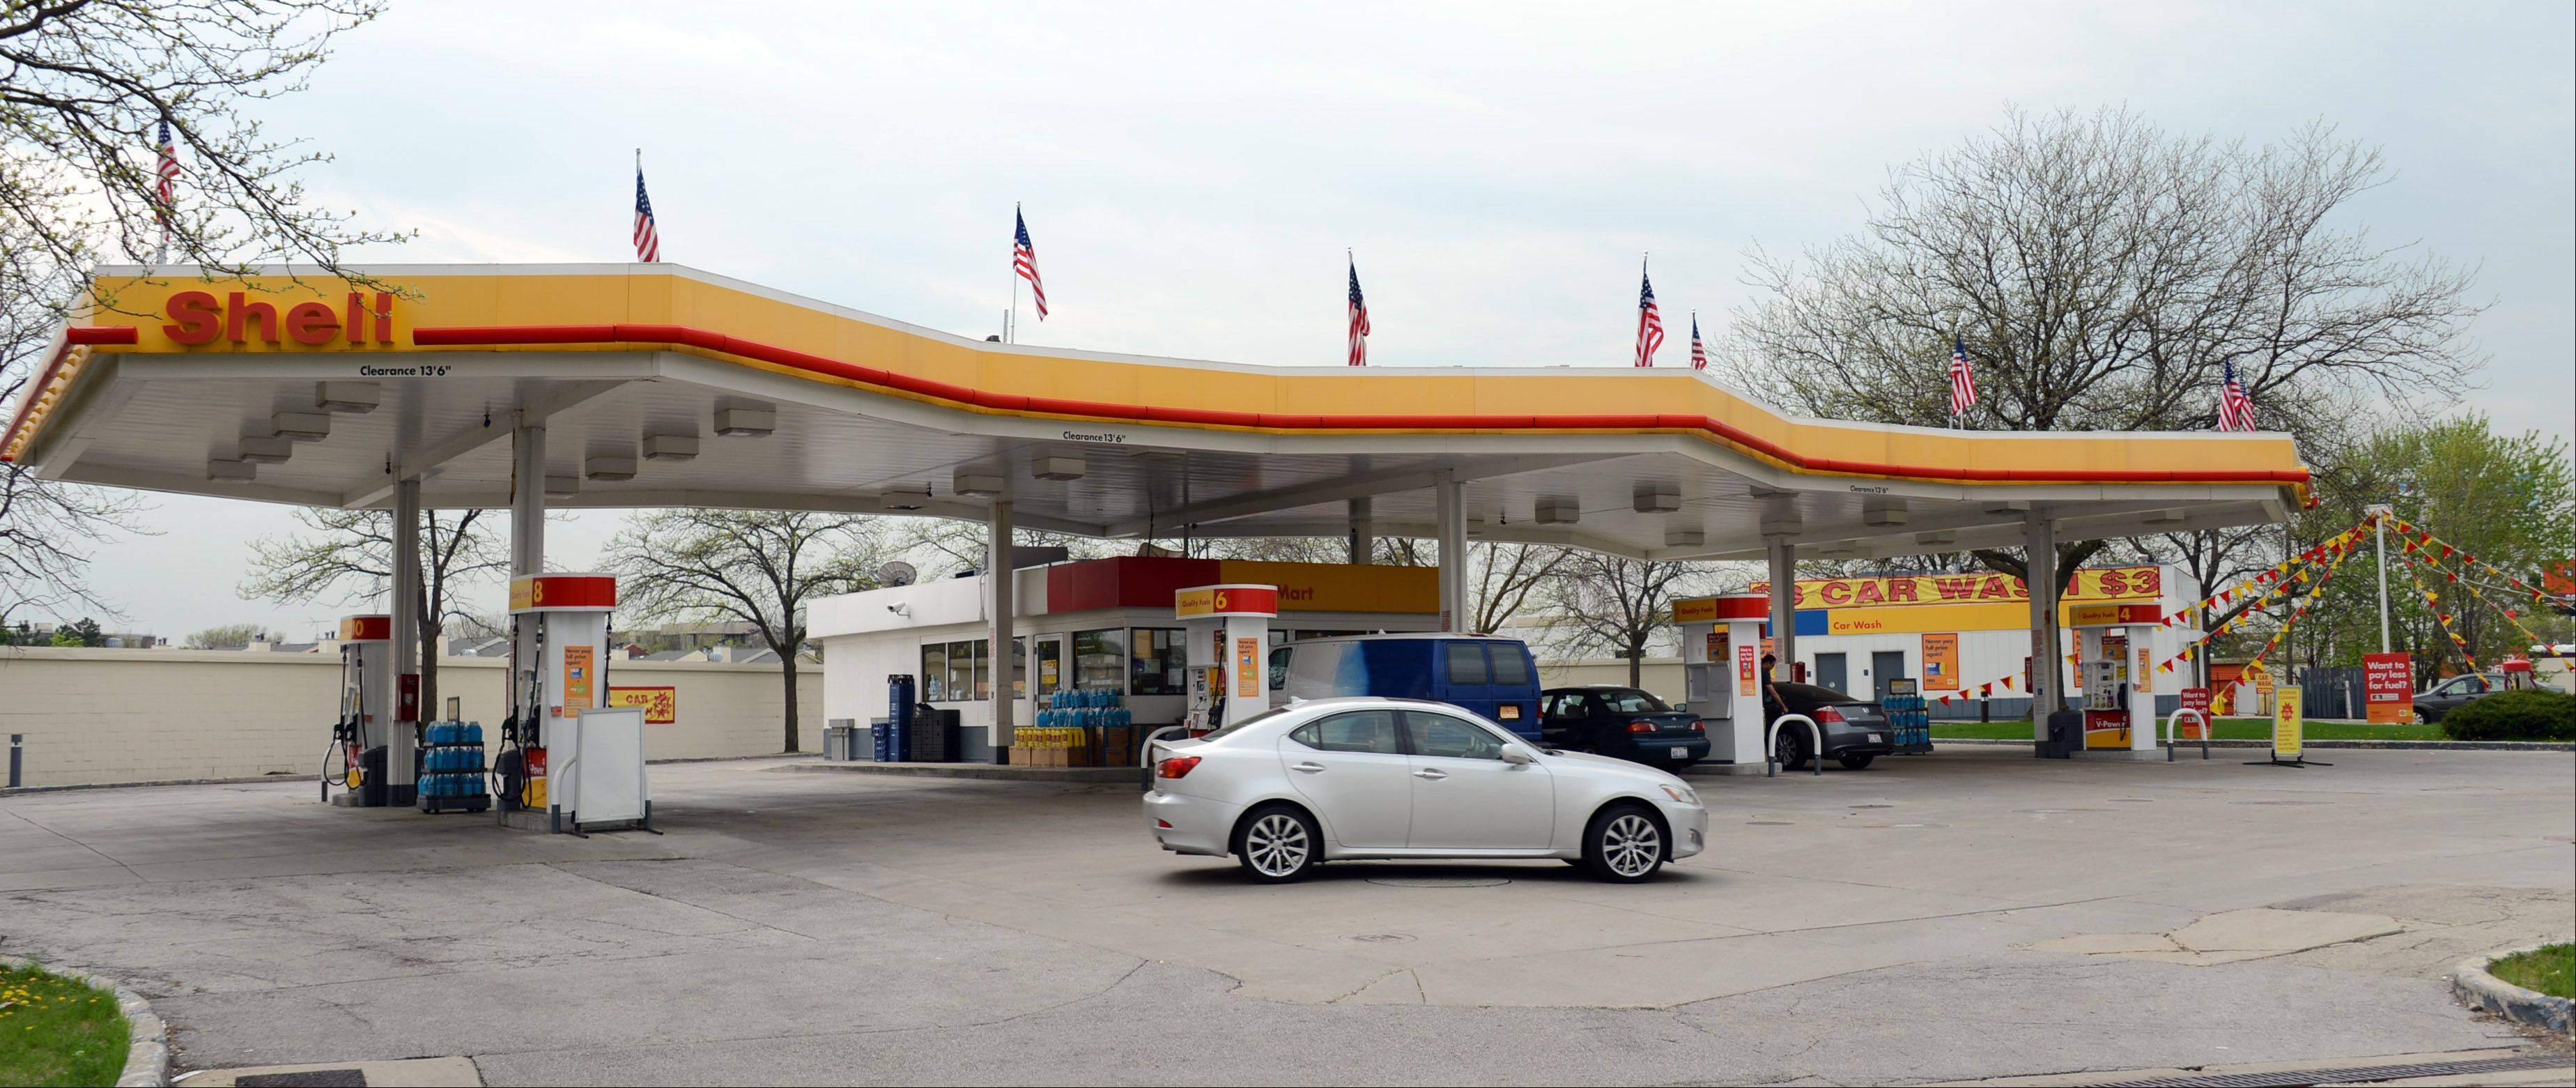 It's a rough time for Chicago region drivers with untamed gas prices topping national averages.